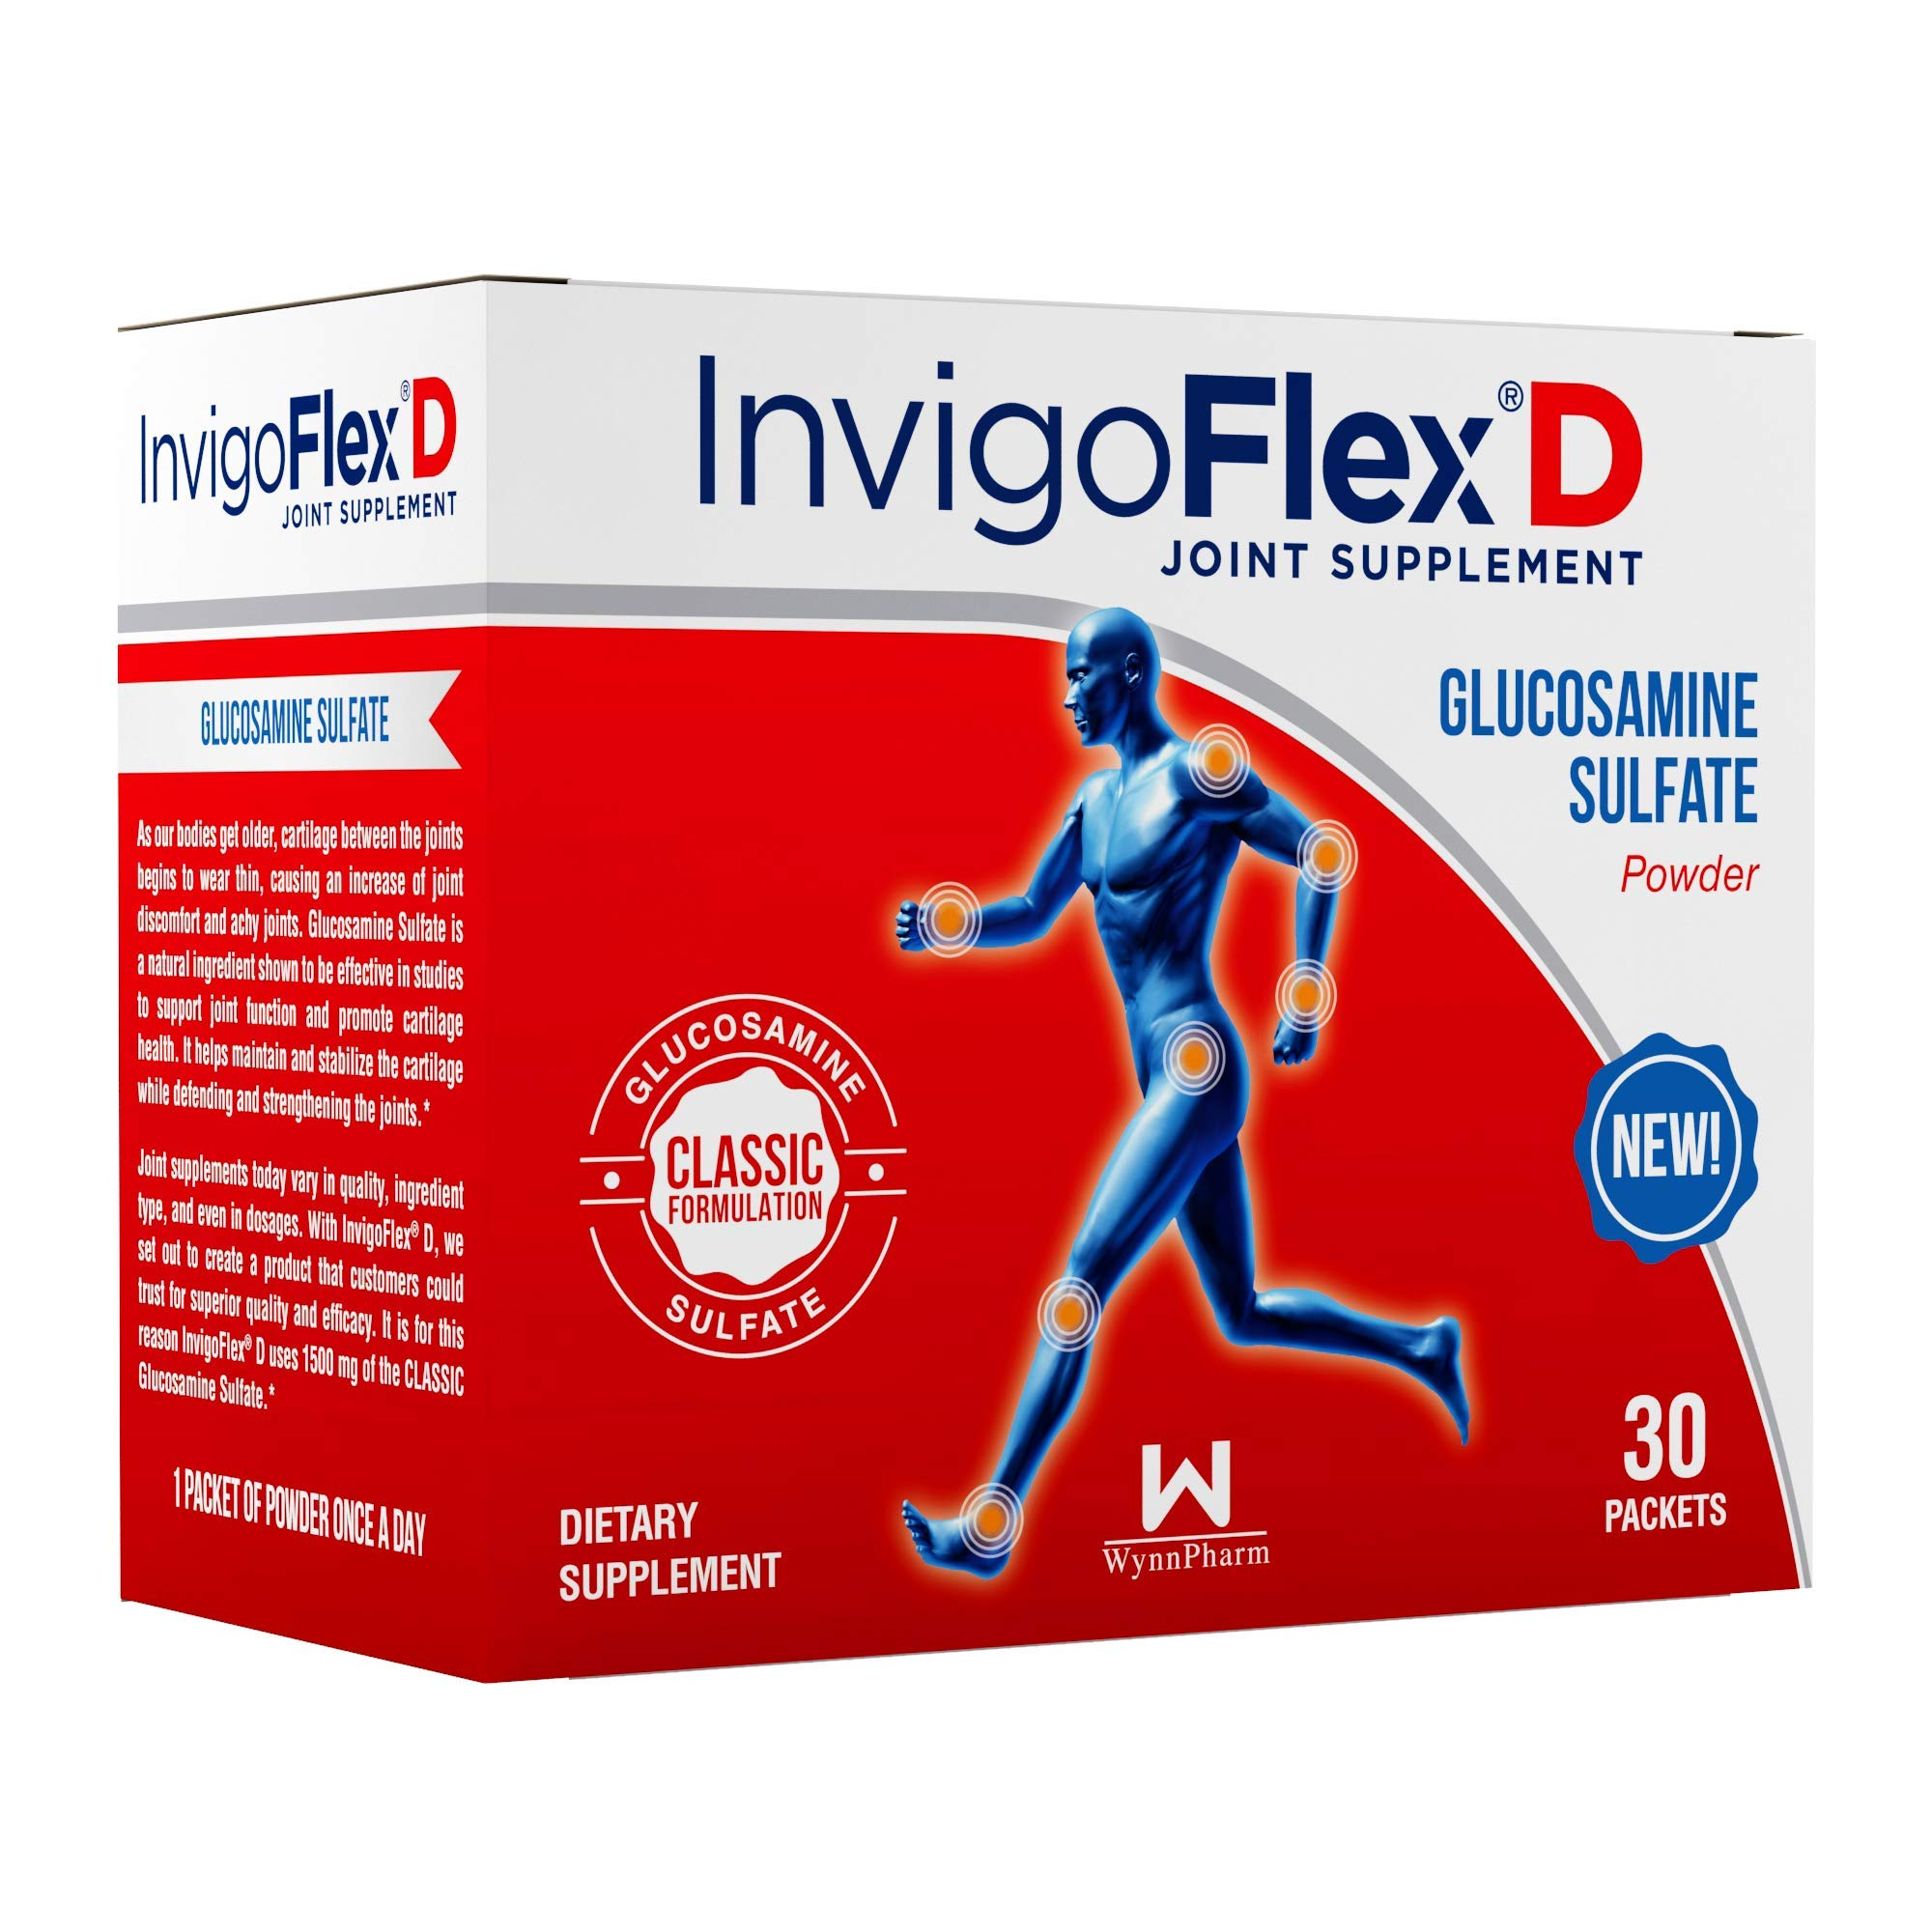 1500mg of Glucosamine Sulfate Powder (Classic Formulation) - Premium Joint Pain Relief Supplement for Knees, Hands, Back, and Hip Support by InvigoFlex® D: Glucosamine Sulfate, Packets - 30 Packets by INVIGOFLEX